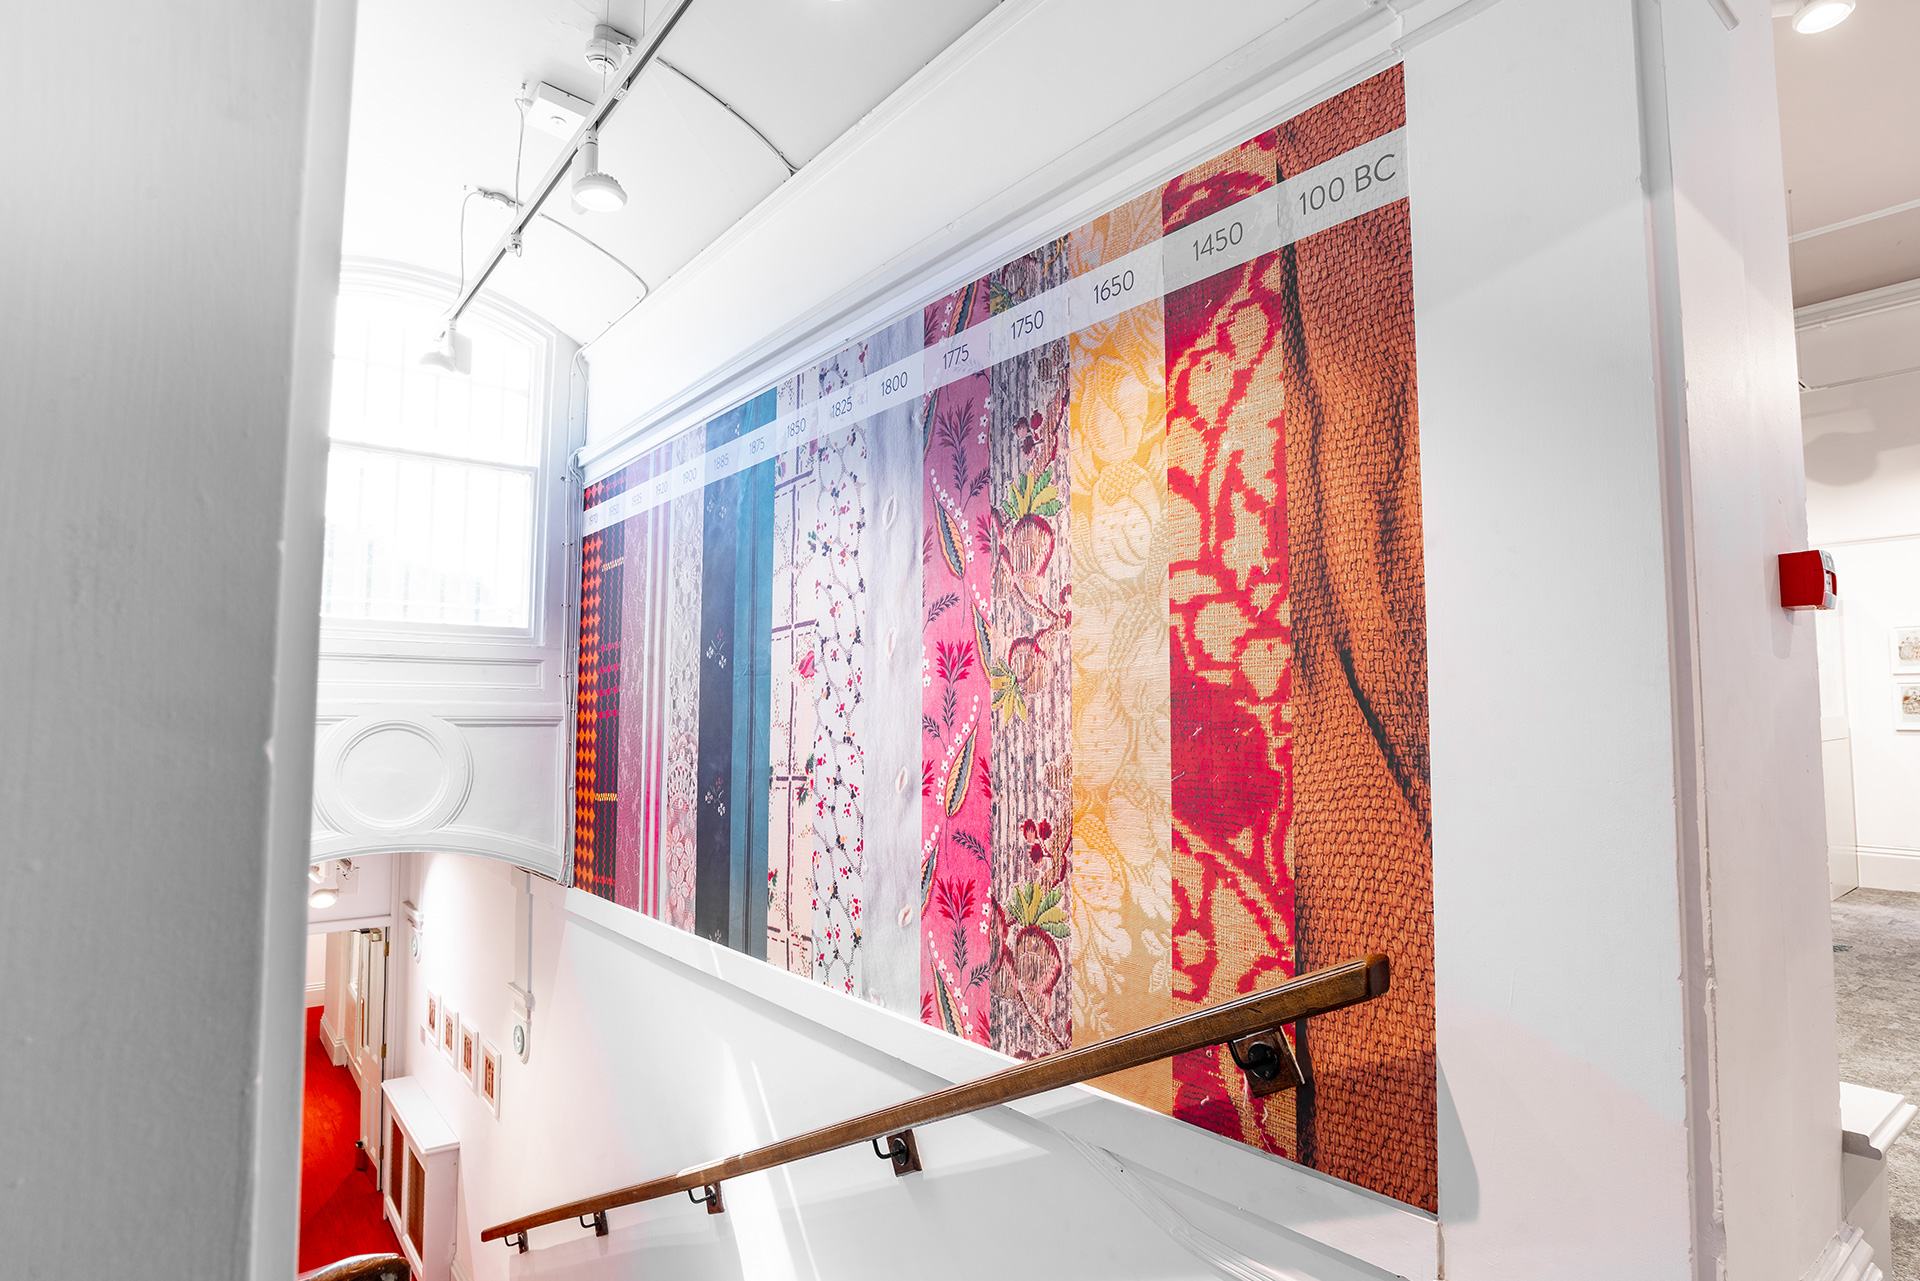 The Fashion Gallery Wall Vinyl Graphics Bankfield Museum Halifax Calderdale Council IDEA Design Rotherham Sheffield